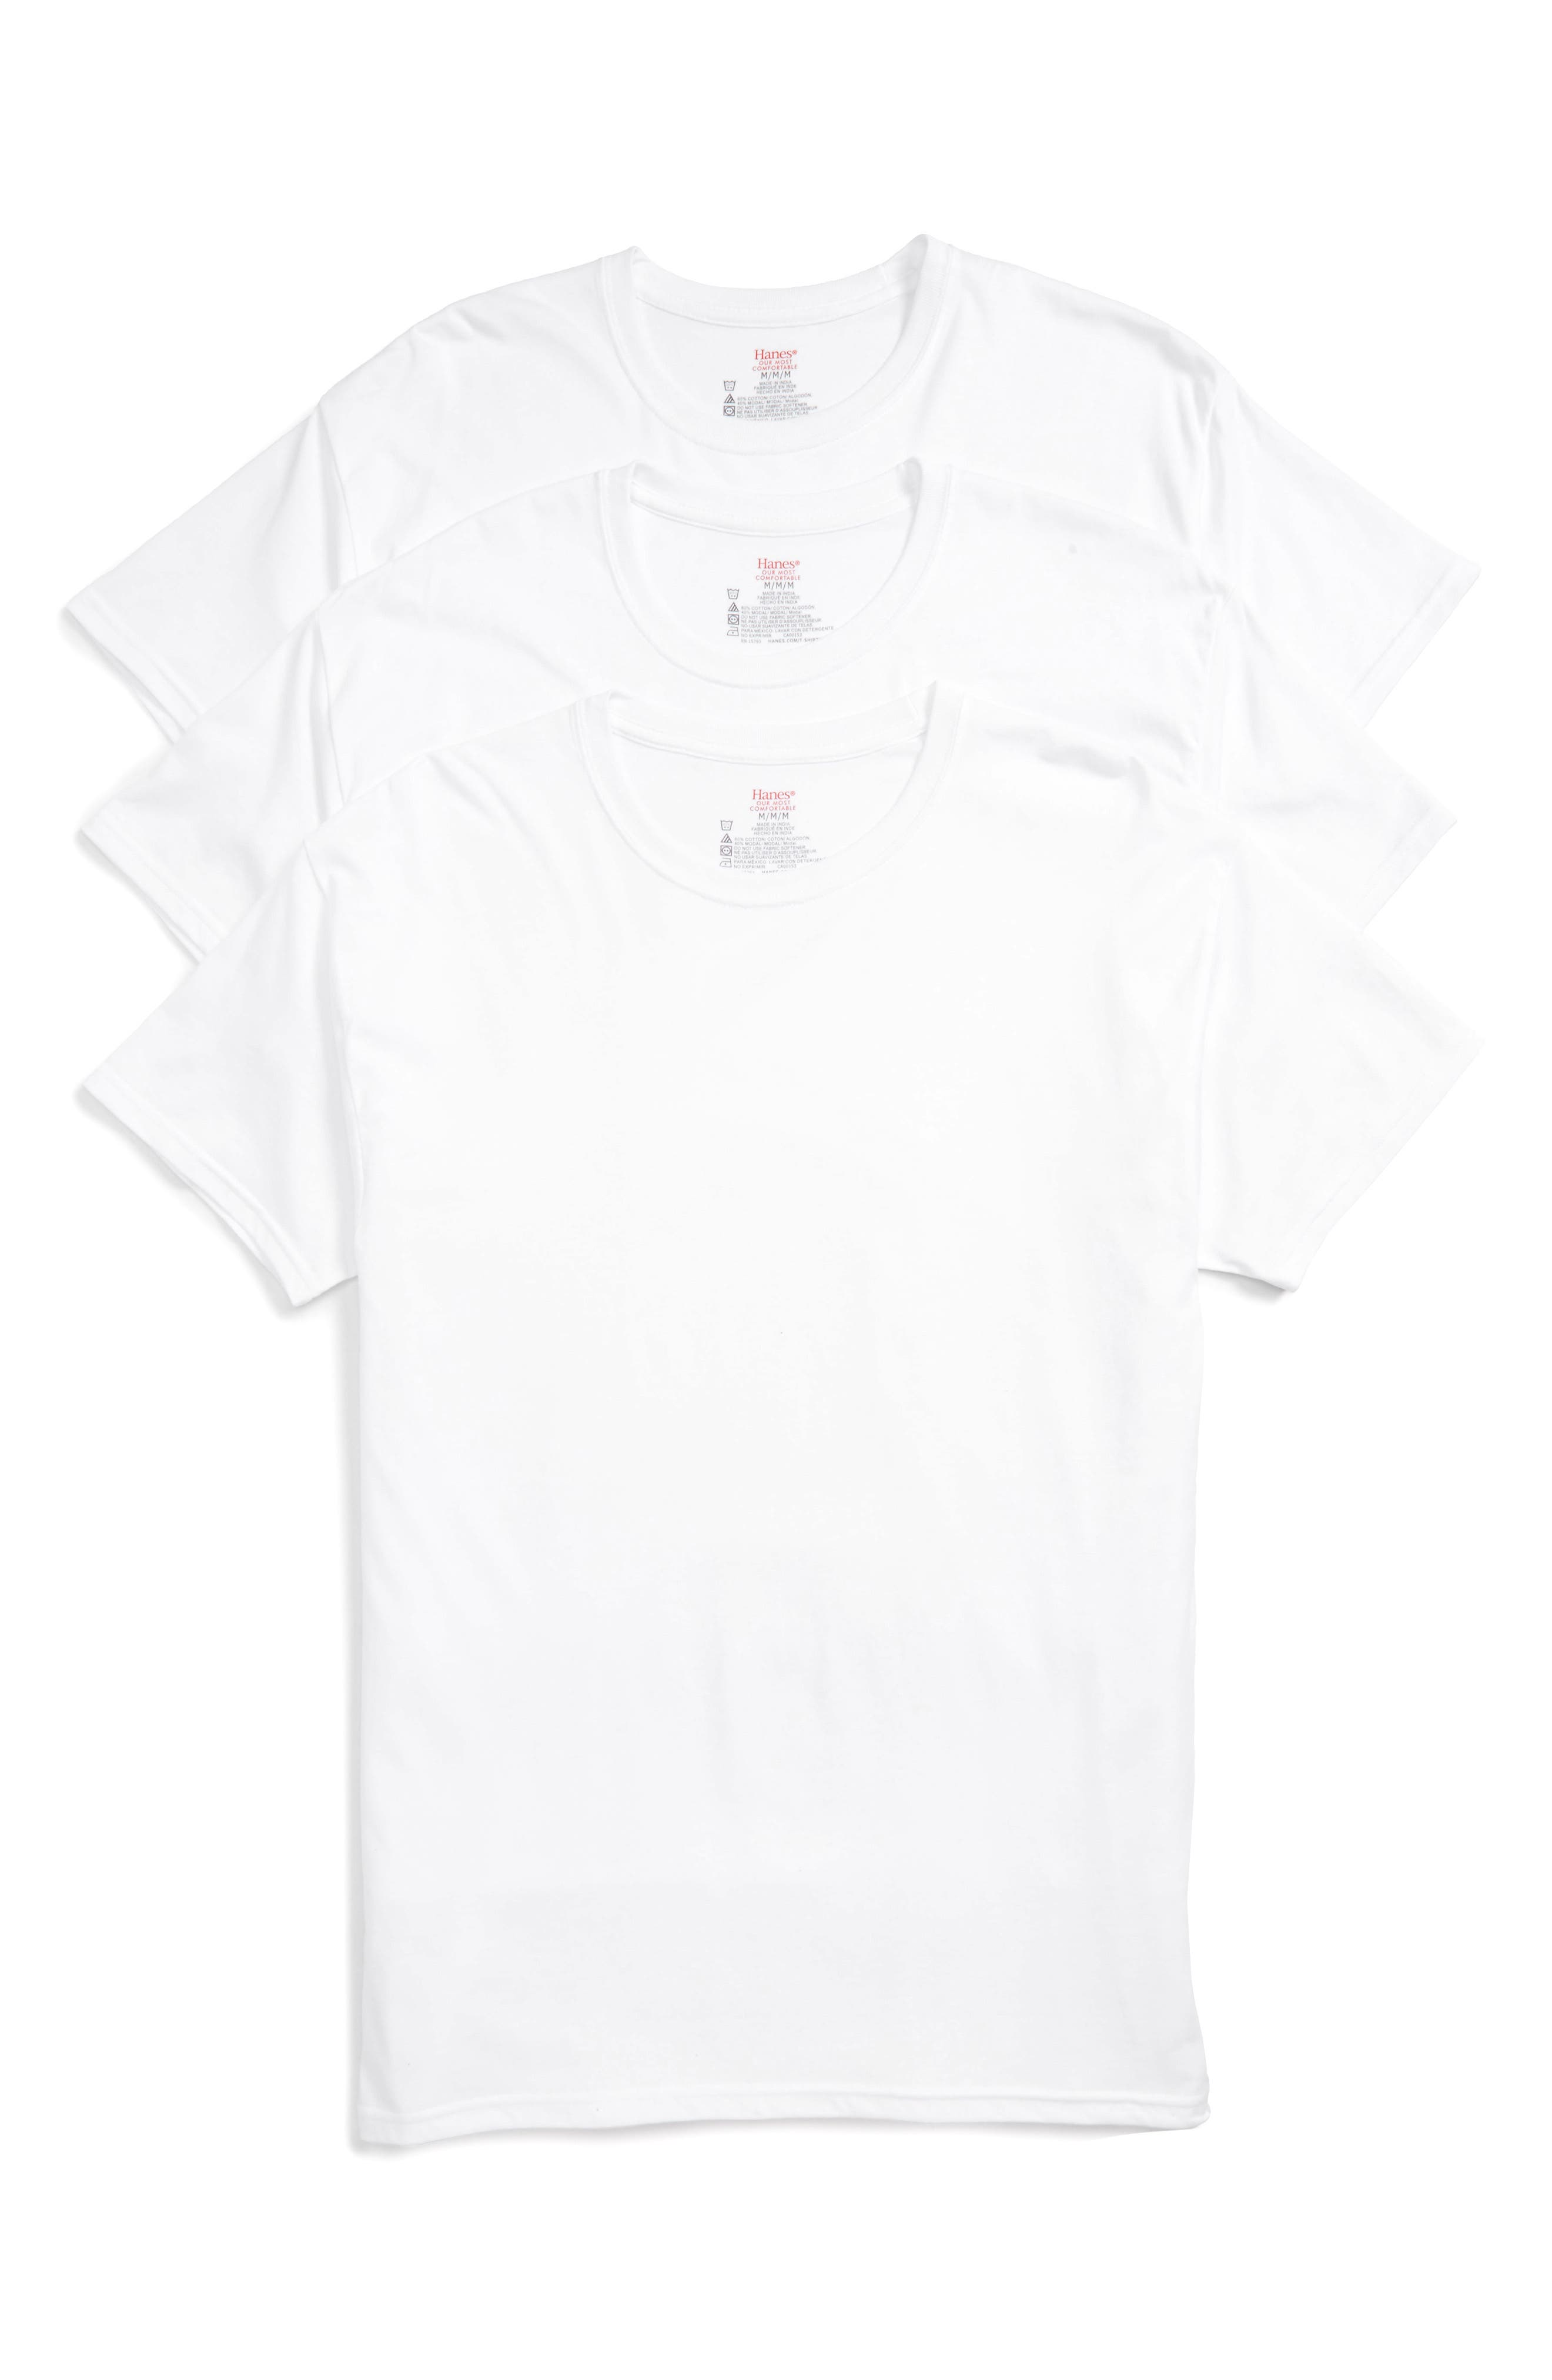 Main Image - Hanes Luxury Essentials 3-Pack T-Shirt